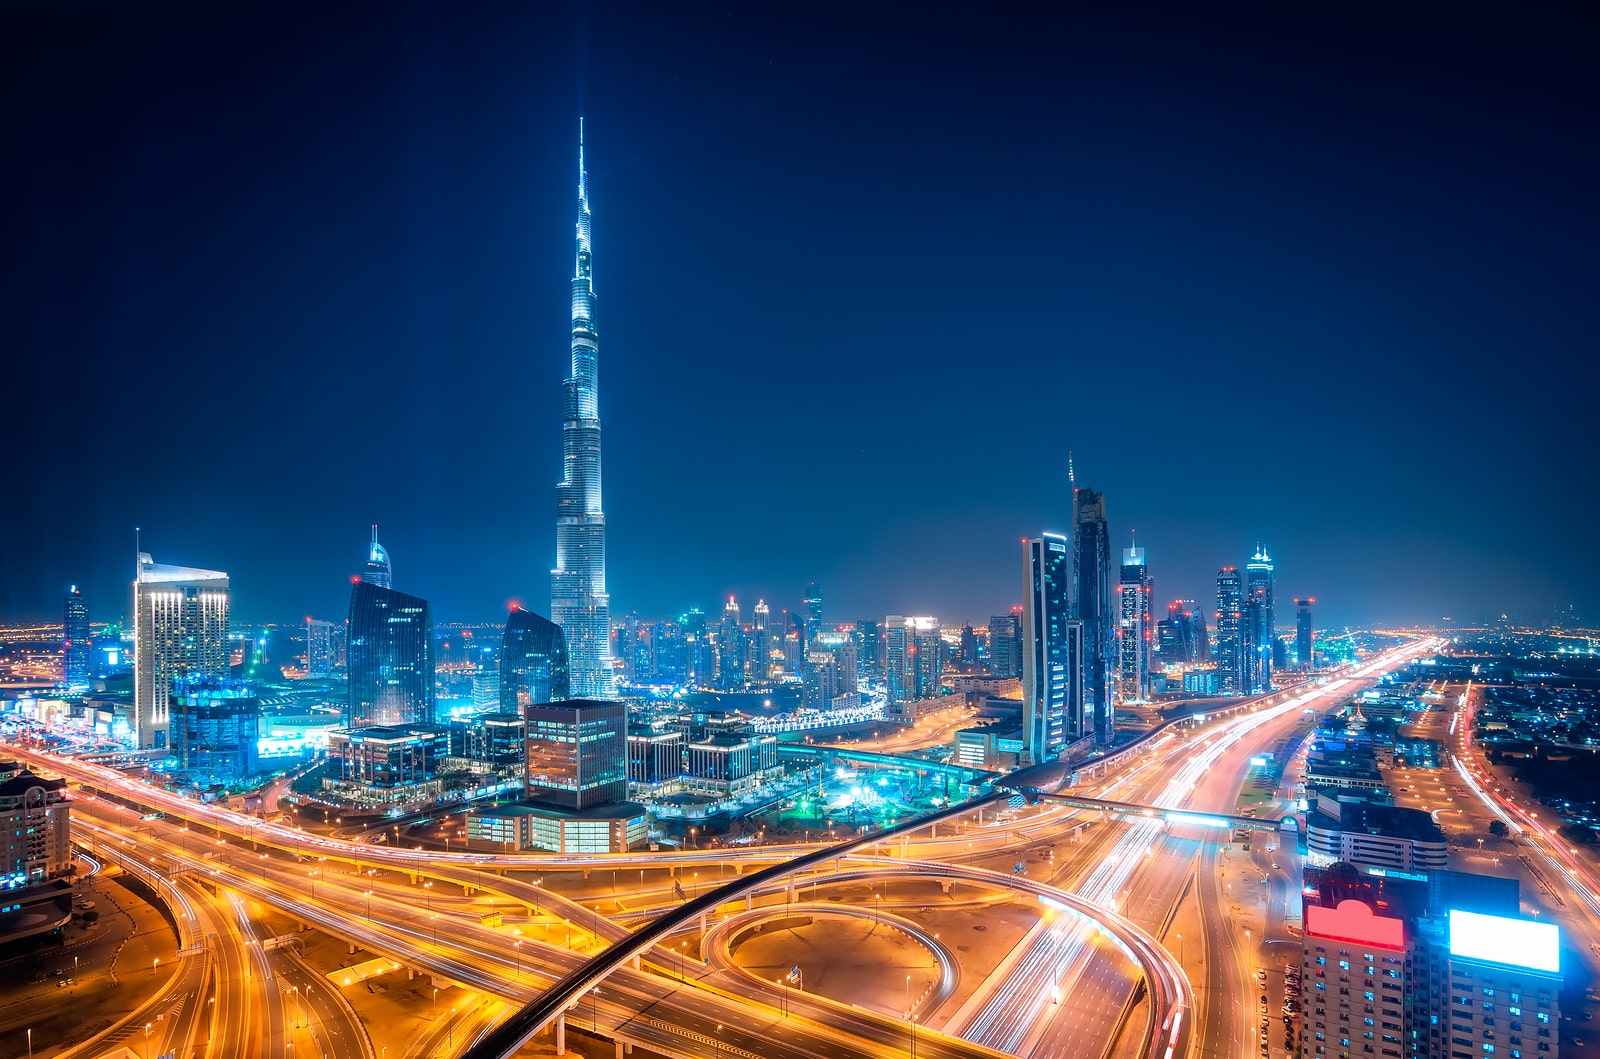 Dubai's Expo 2020 will inject more than 33 billion dollars into the Emirati economy